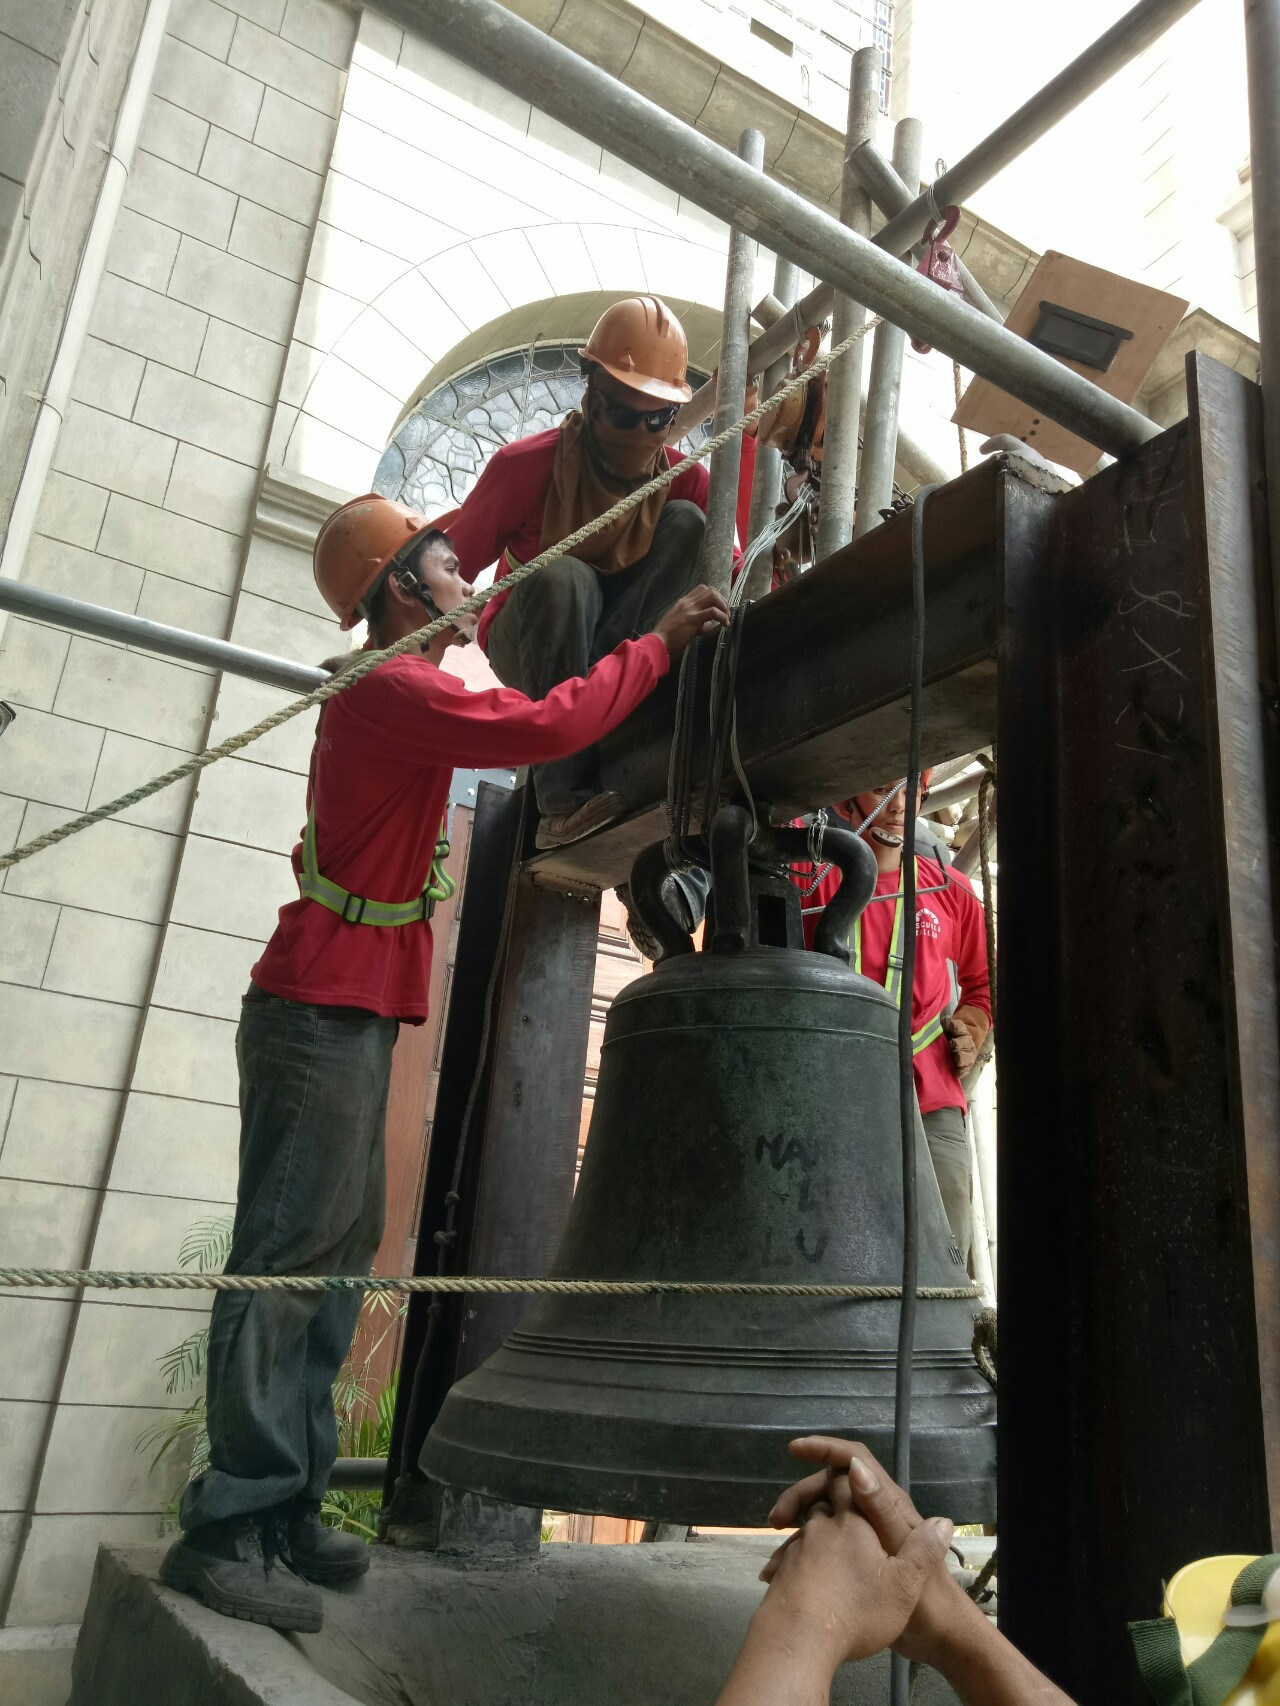 As devotees are expected to flock churches this Holy Week with the observance of the Visita Iglesia, conservation workers move the old of bell of Malate Church.. This intervention is being done to make the bell more more accessible to church goers and so to promote heritage values of this historic church built by the Agustinians.  The bell was made by the foundry of Hilario Sunico ( Fundicion de Hilario Sunico) in 1979 and was dedicated to Our Lady of Remedies, the titular patroness of the church. (PHOTO BY PHILIP PARAAN)